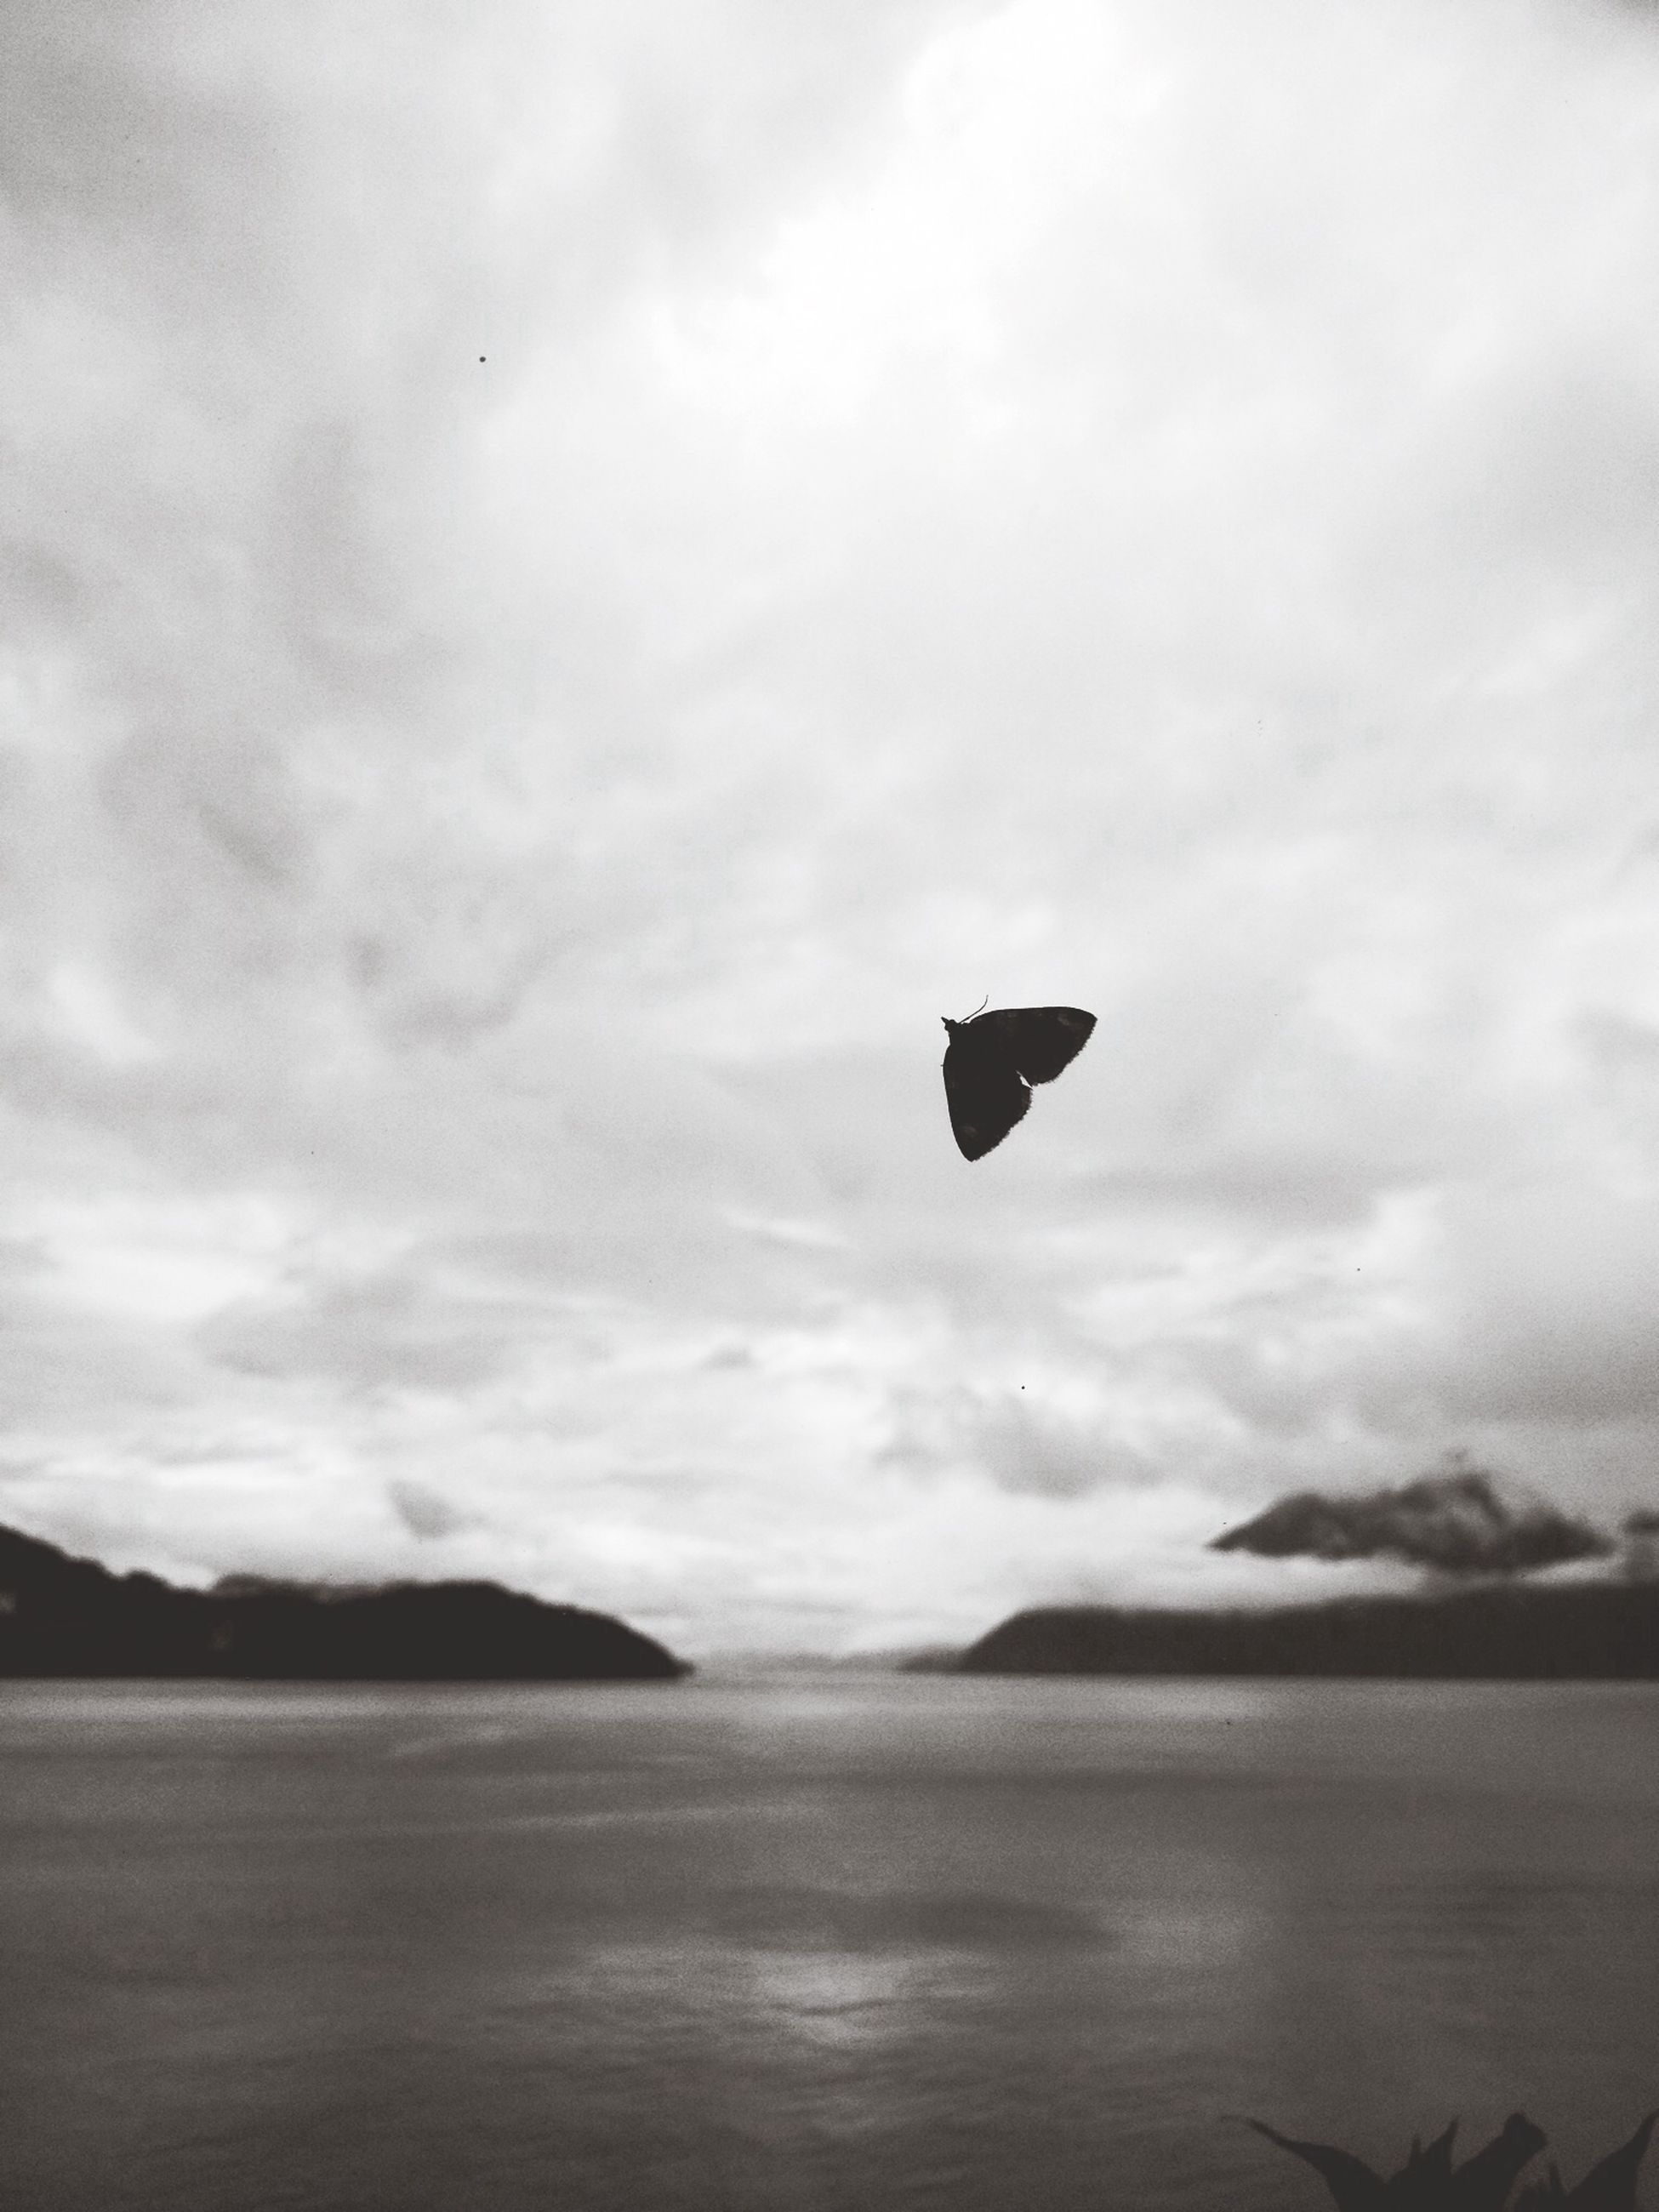 flying, sky, mid-air, tranquility, tranquil scene, scenics, cloud - sky, beauty in nature, bird, nature, one person, water, sea, adventure, cloud, parachute, paragliding, silhouette, cloudy, mountain